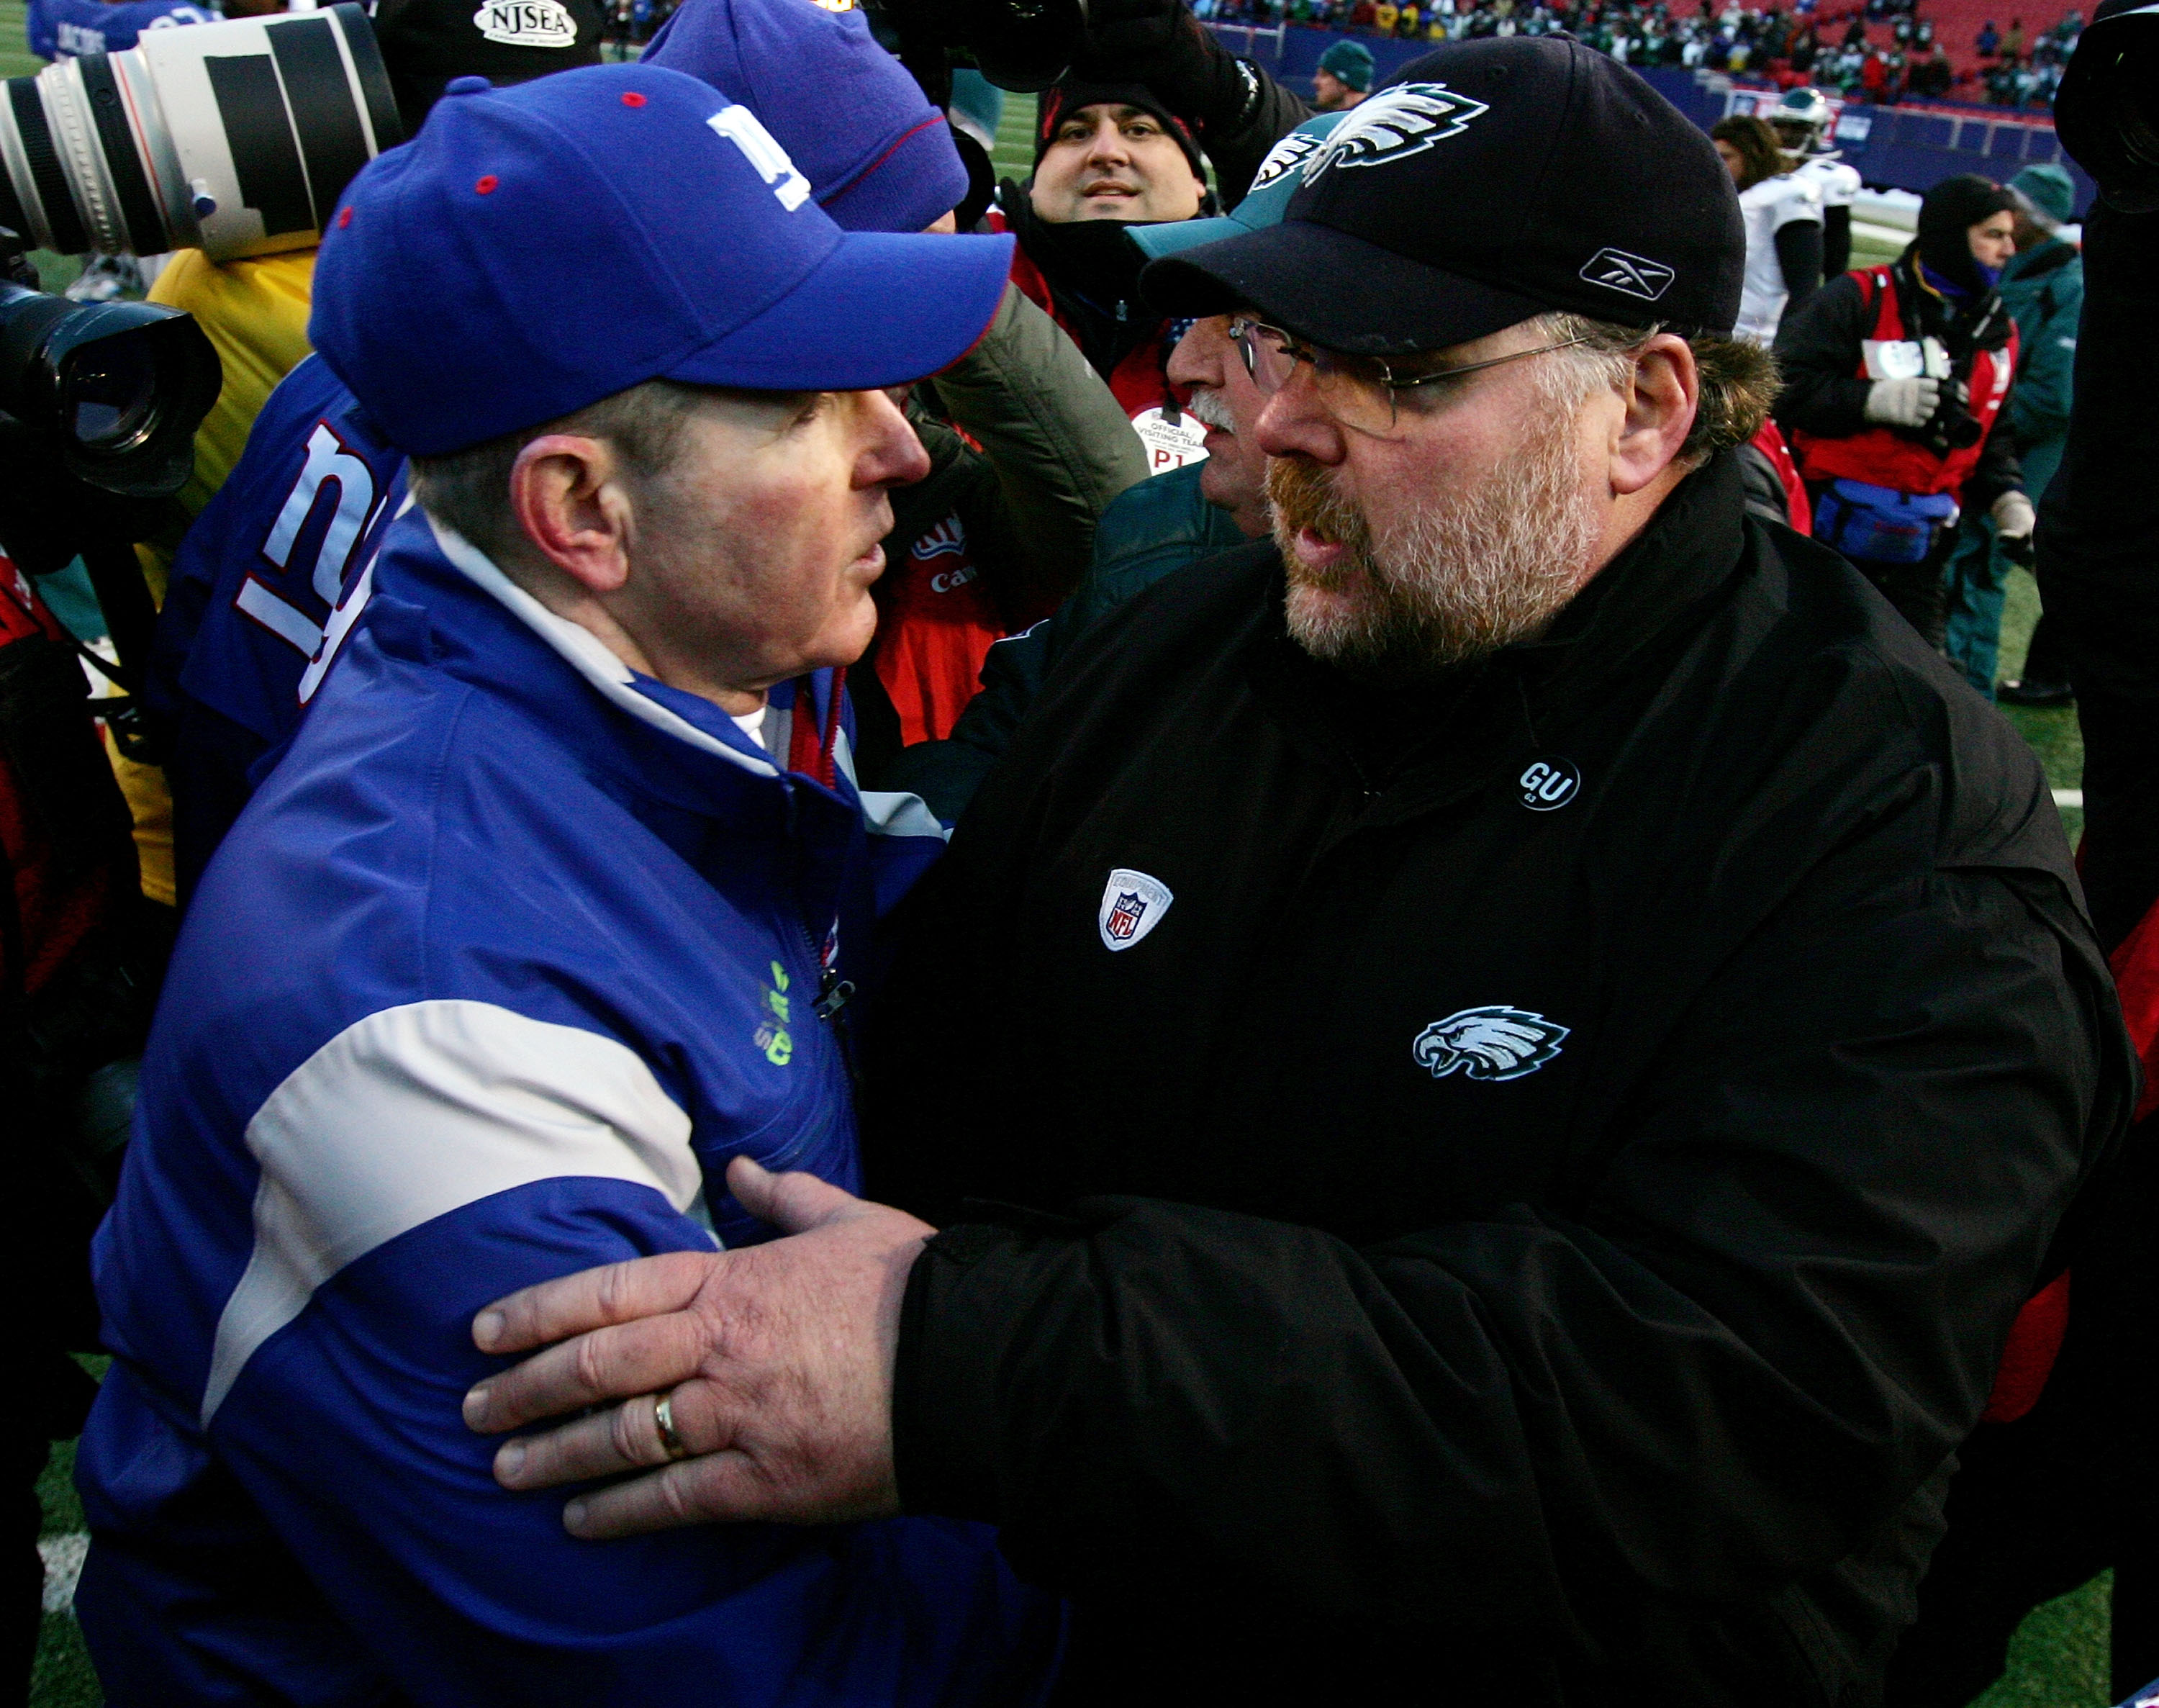 EAST RUTHERFORD, NJ - JANUARY 11:  Head coach Tom Coughlin #10 of the New York Giants shakes hands with head coach Andy Reid of the Philadelphia Eagles after the NFC Divisional Playoff Game on January 11, 2009 at Giants Stadium in East Rutherford, New Jer